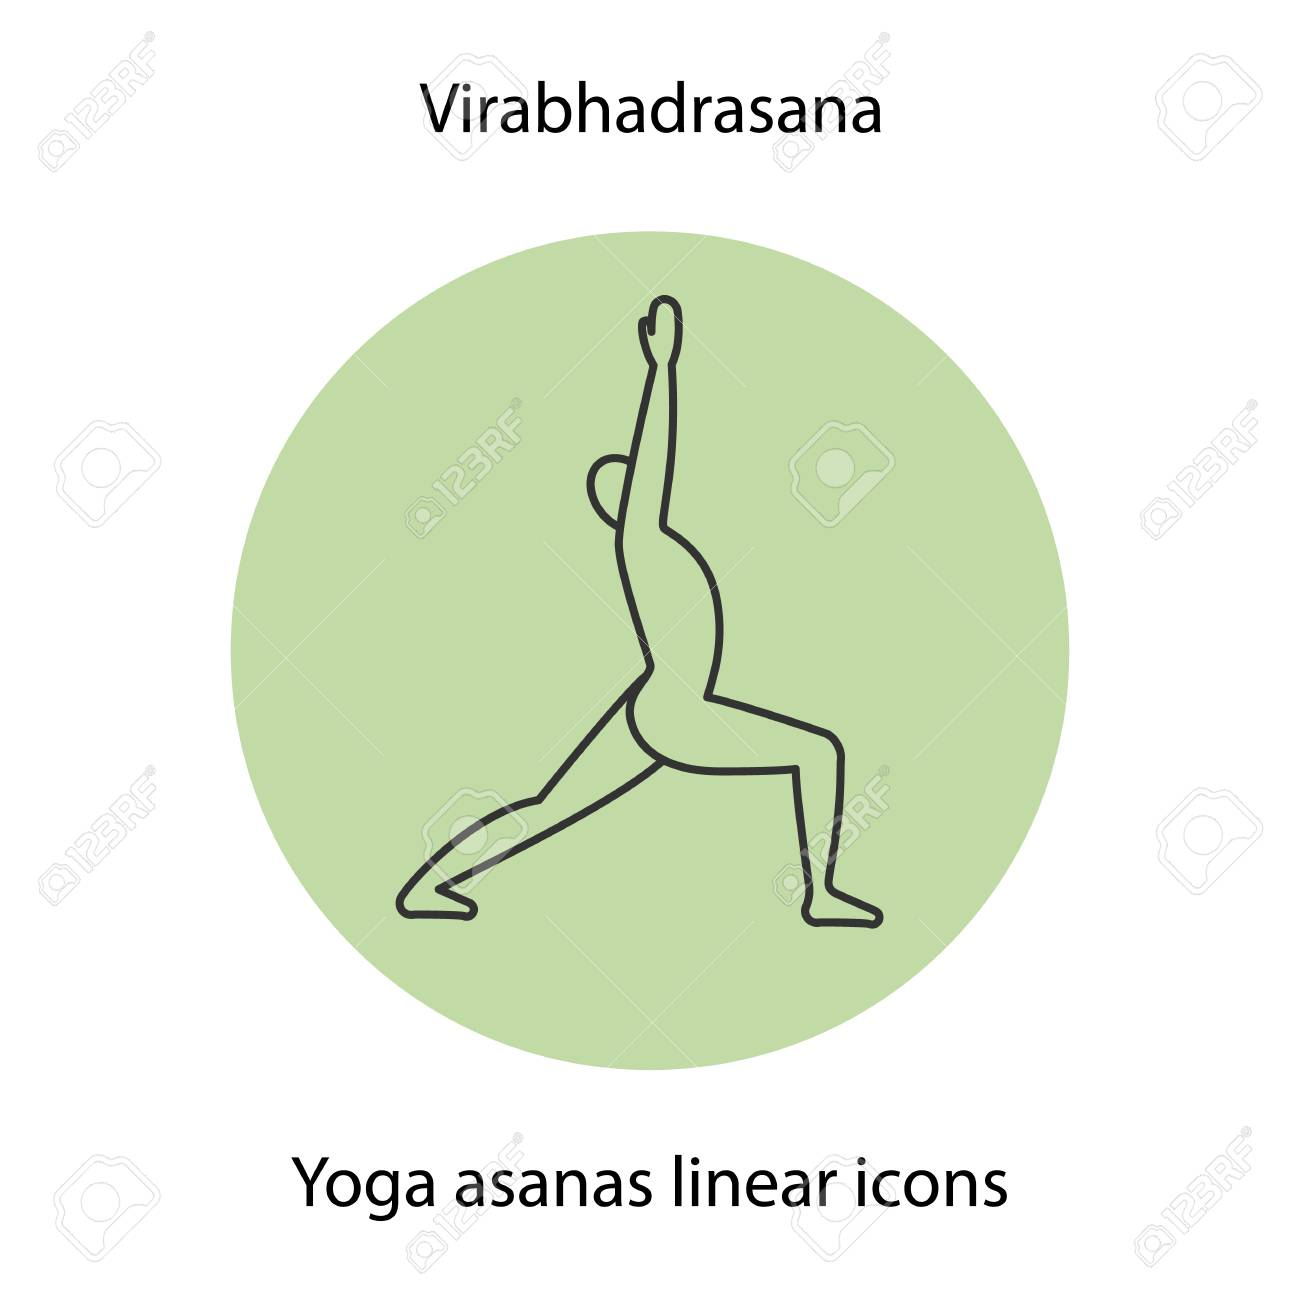 Virabhadrasana Yoga Position Linear Icon Thin Line Illustration